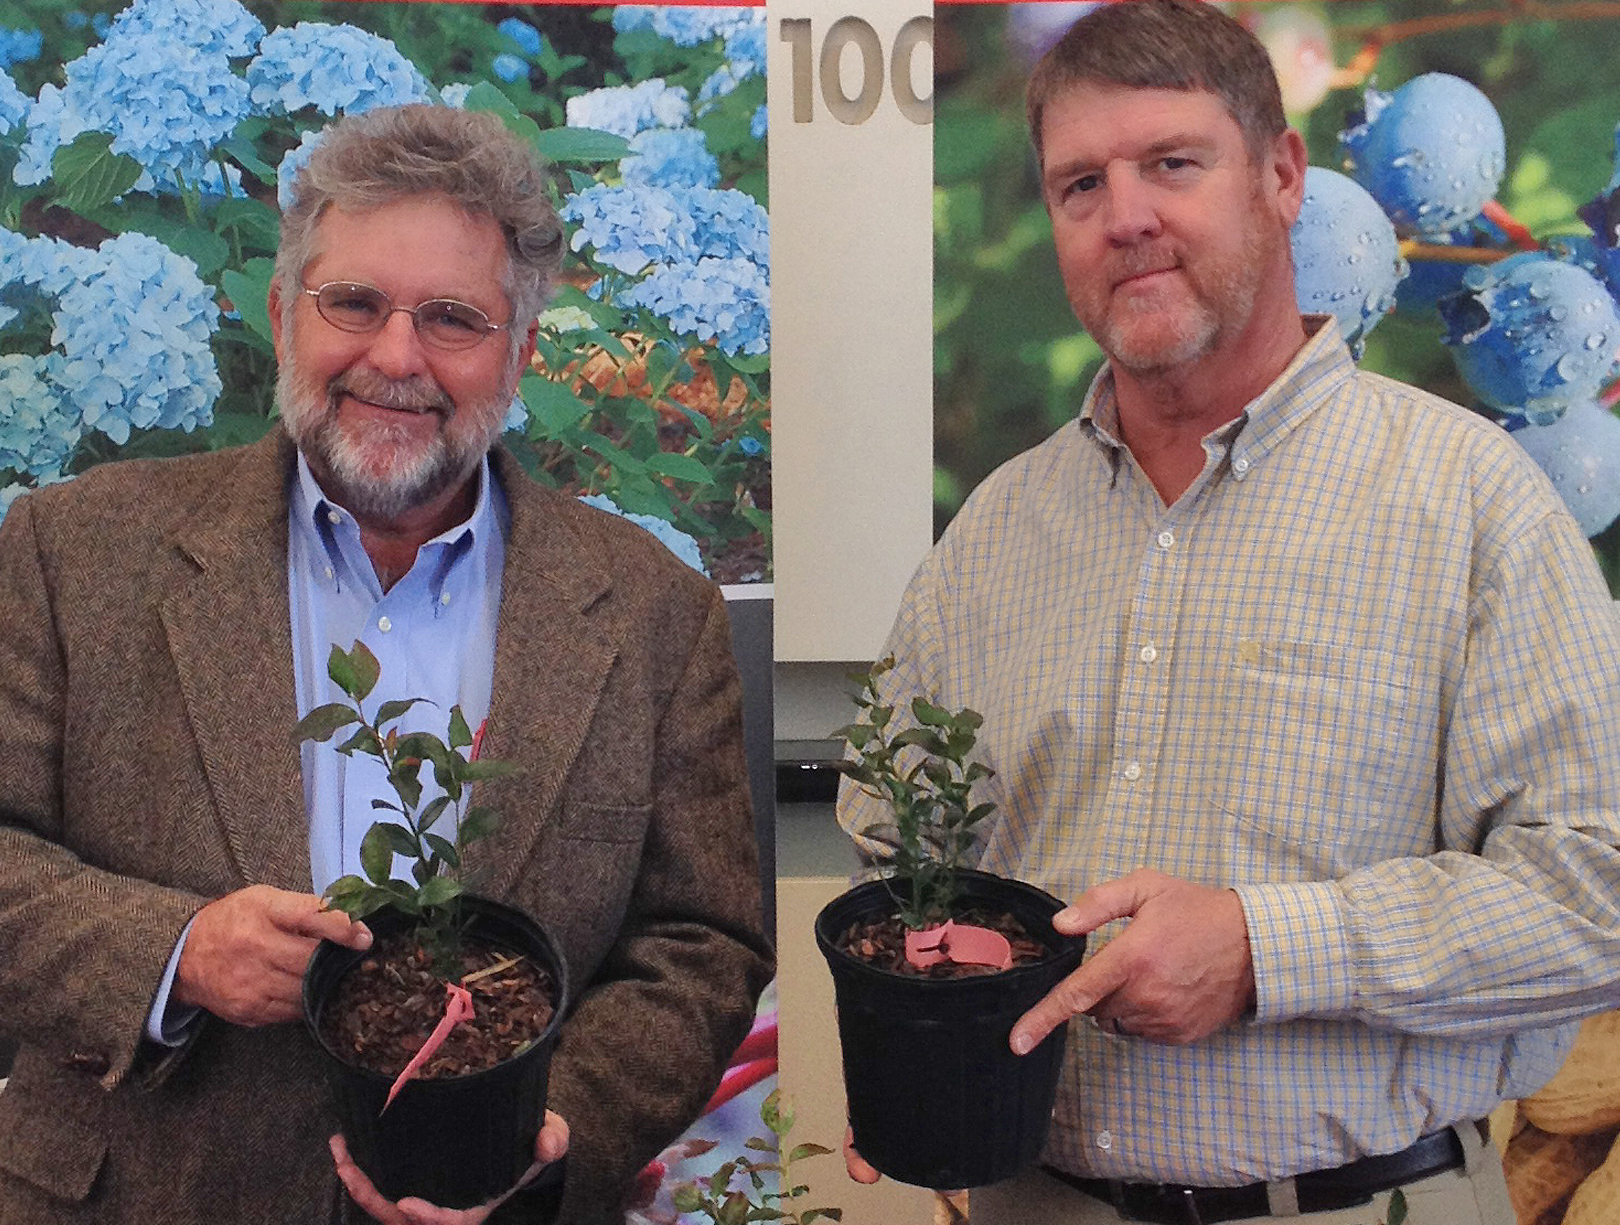 Retired UGA blueberry and small fruit horticulturist Gerard Krewer, left, holds a container of a new blueberry variety named in his honor. UGA blueberry breeder Scott NeSmith (right) named the new cultivar in honor of Krewer in recognition of his 20 years of service to Georgia's blueberry industry.